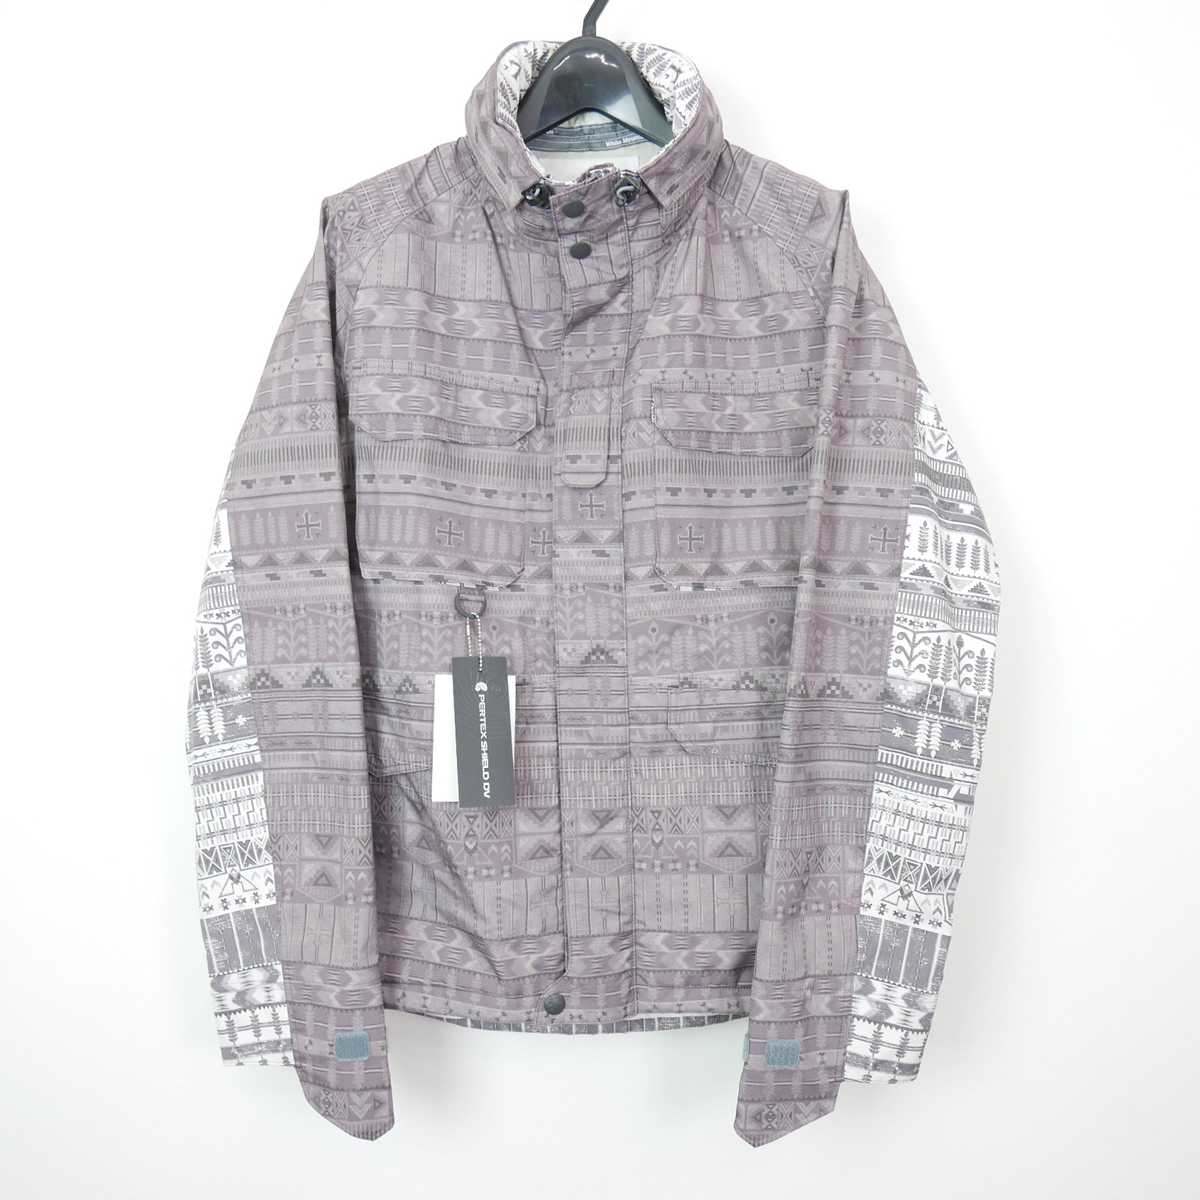 11AW 11FW White Mountaineering ホワイトマウンテニアリング PERTEX ETHNIC PATTERNED JACKET ネイティブ柄 マウンテンパーカー ジャケット ブルゾン CHARCOAL 1 【中古】 DN-11303